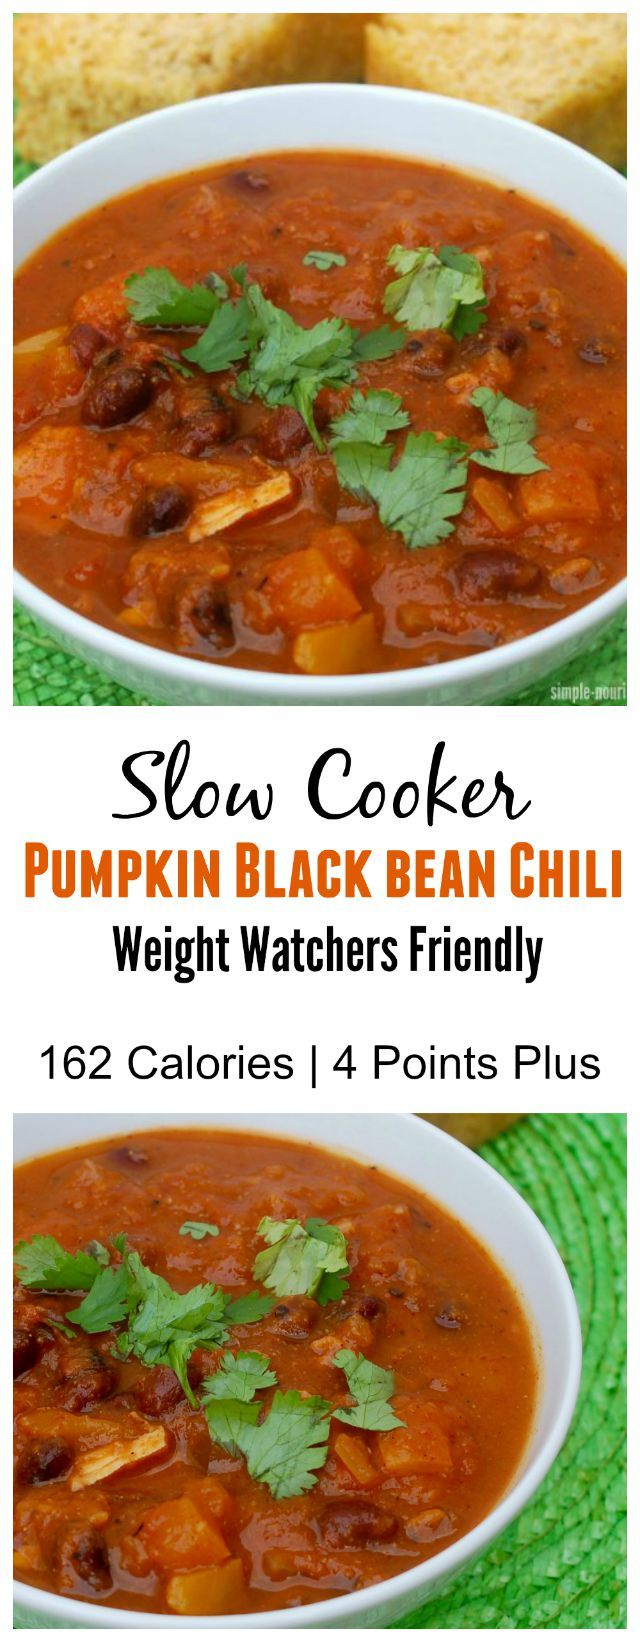 Slow Cooker Pumpkin Black Bean Chili. One of my favorite  easy healthy and delicious Weight Watchers Recipes that works with Simply Filling 162 calories, 4 Points Plus http://simple-nourished-living.com/2013/11/slow-cooker-pumpkin-black-bean-chili/